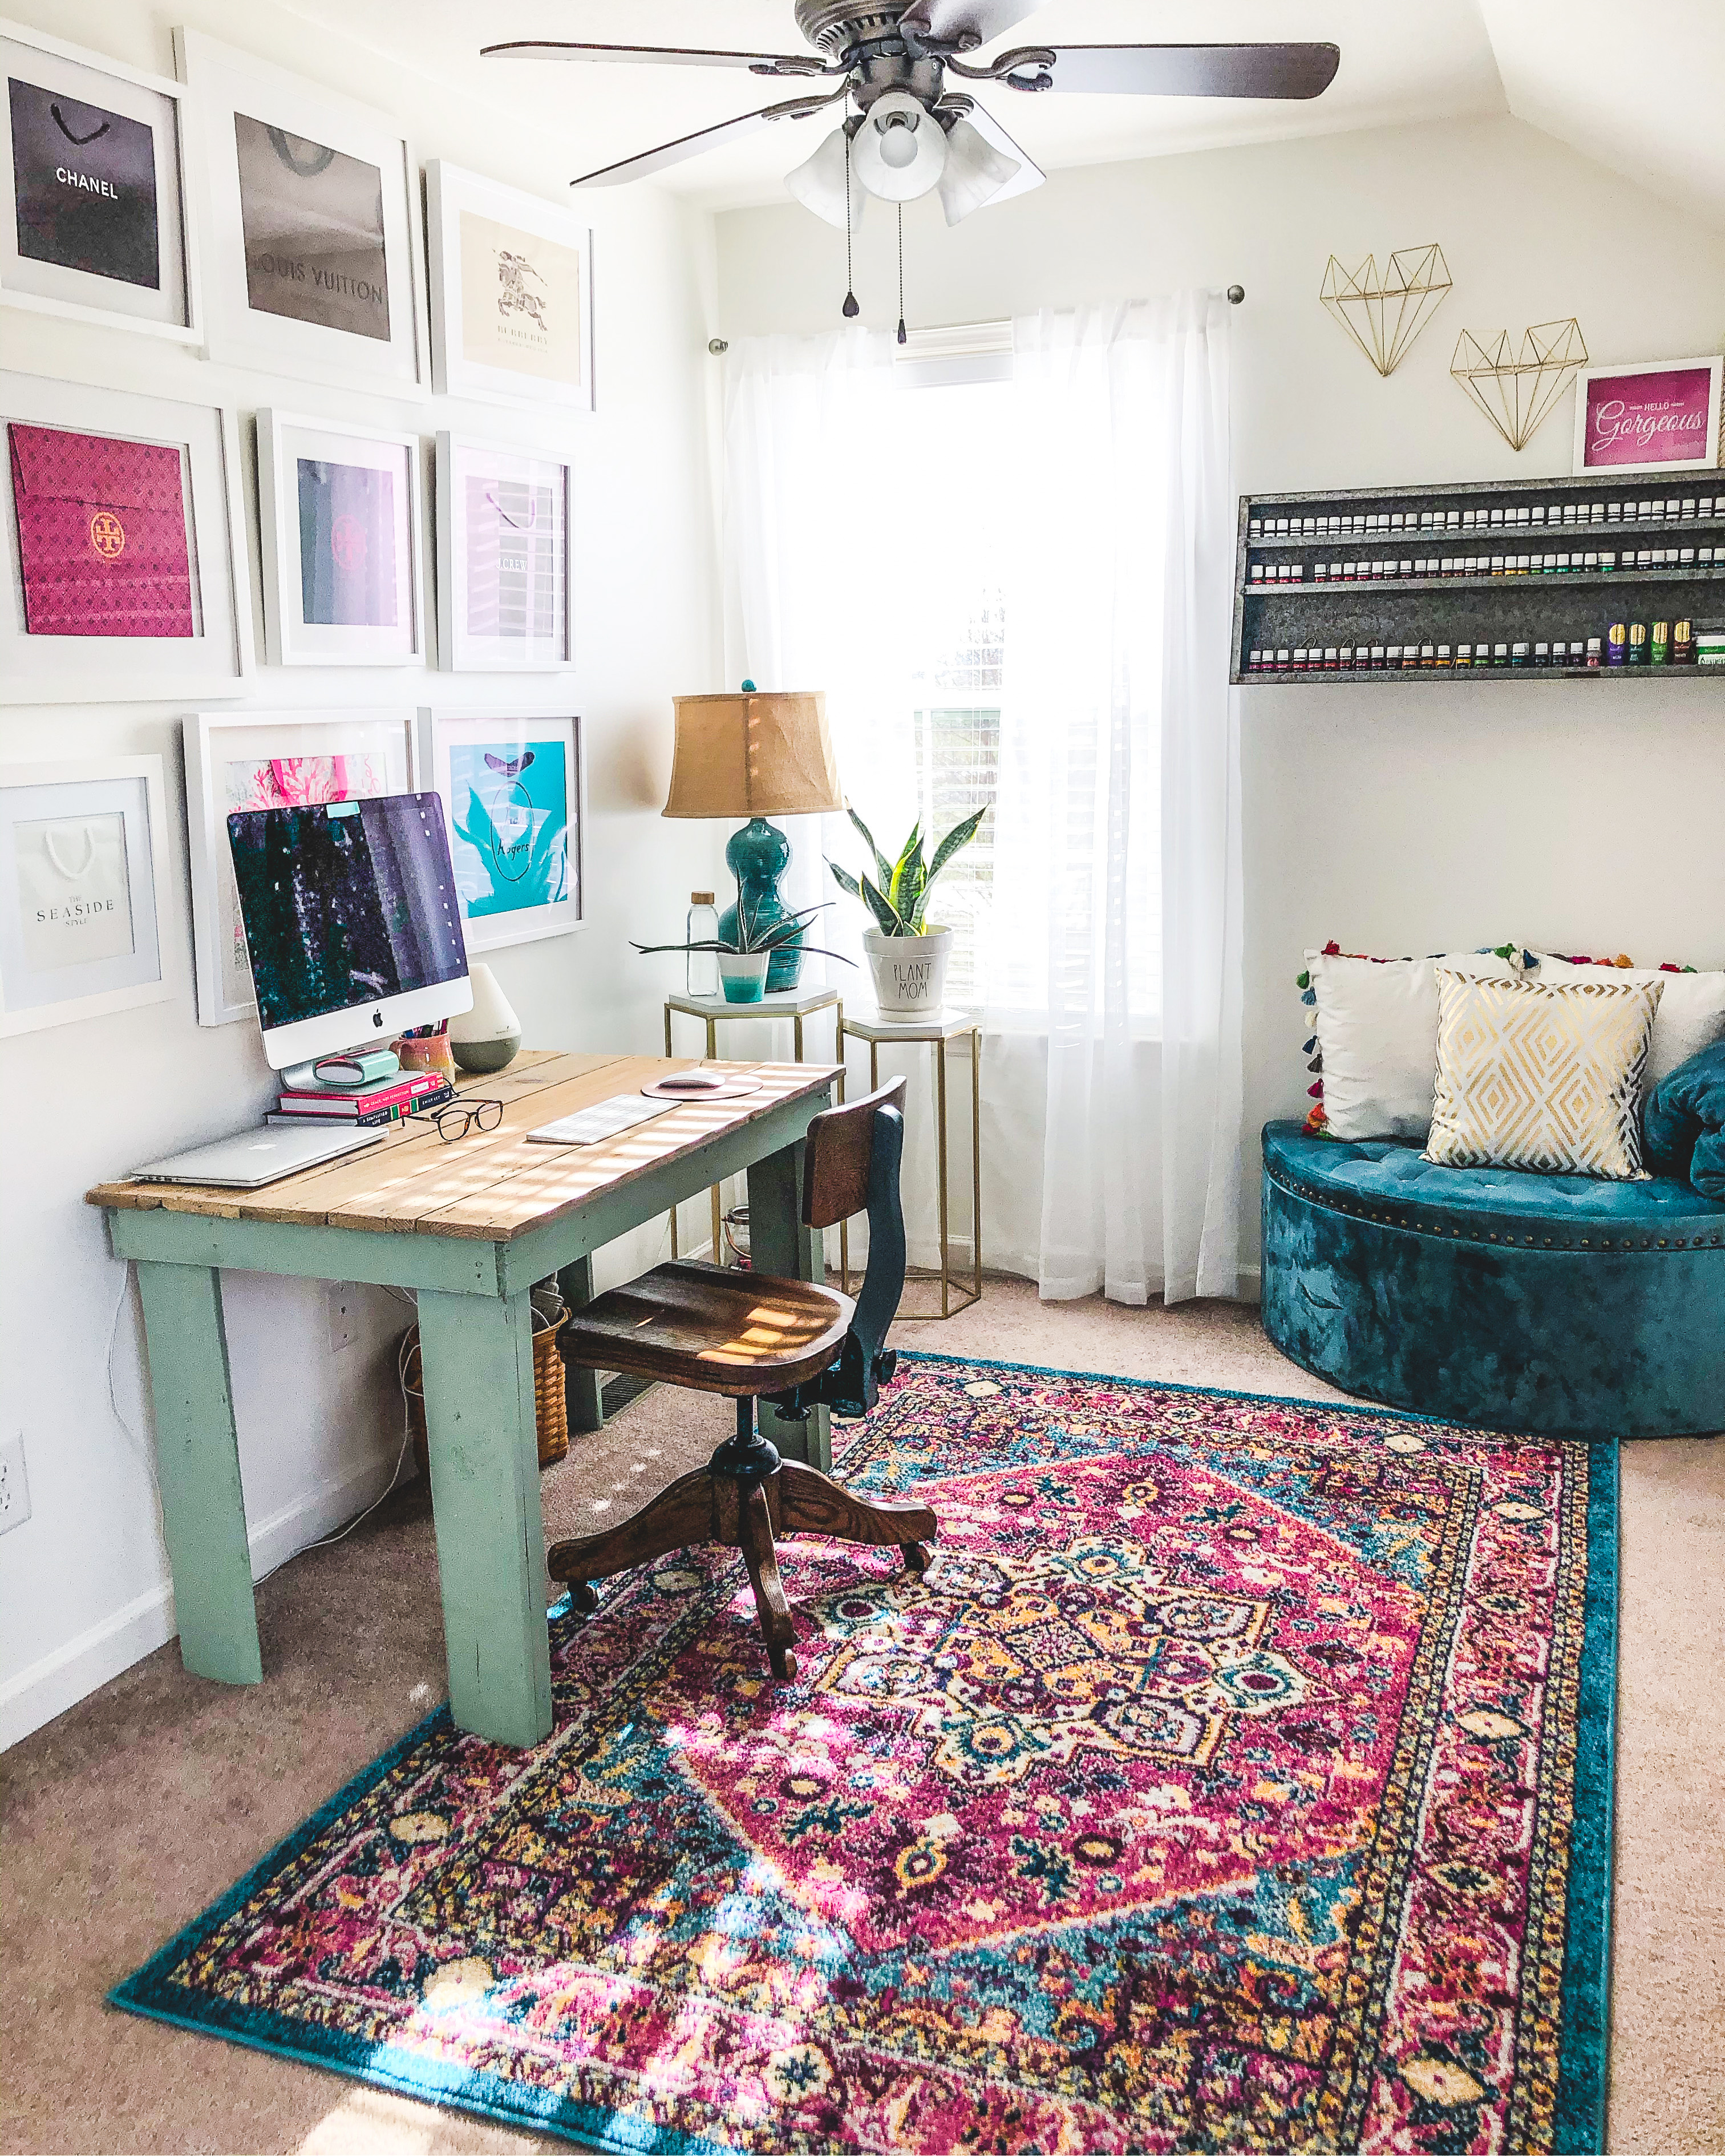 Shaw Avenue Blog by Jenn Pennell. Lifestyle, affordable fashion, family of 5 travel, Young Living Essential Oils, Longaberger Baskets, Dresden & Company. Colorful home office renovation